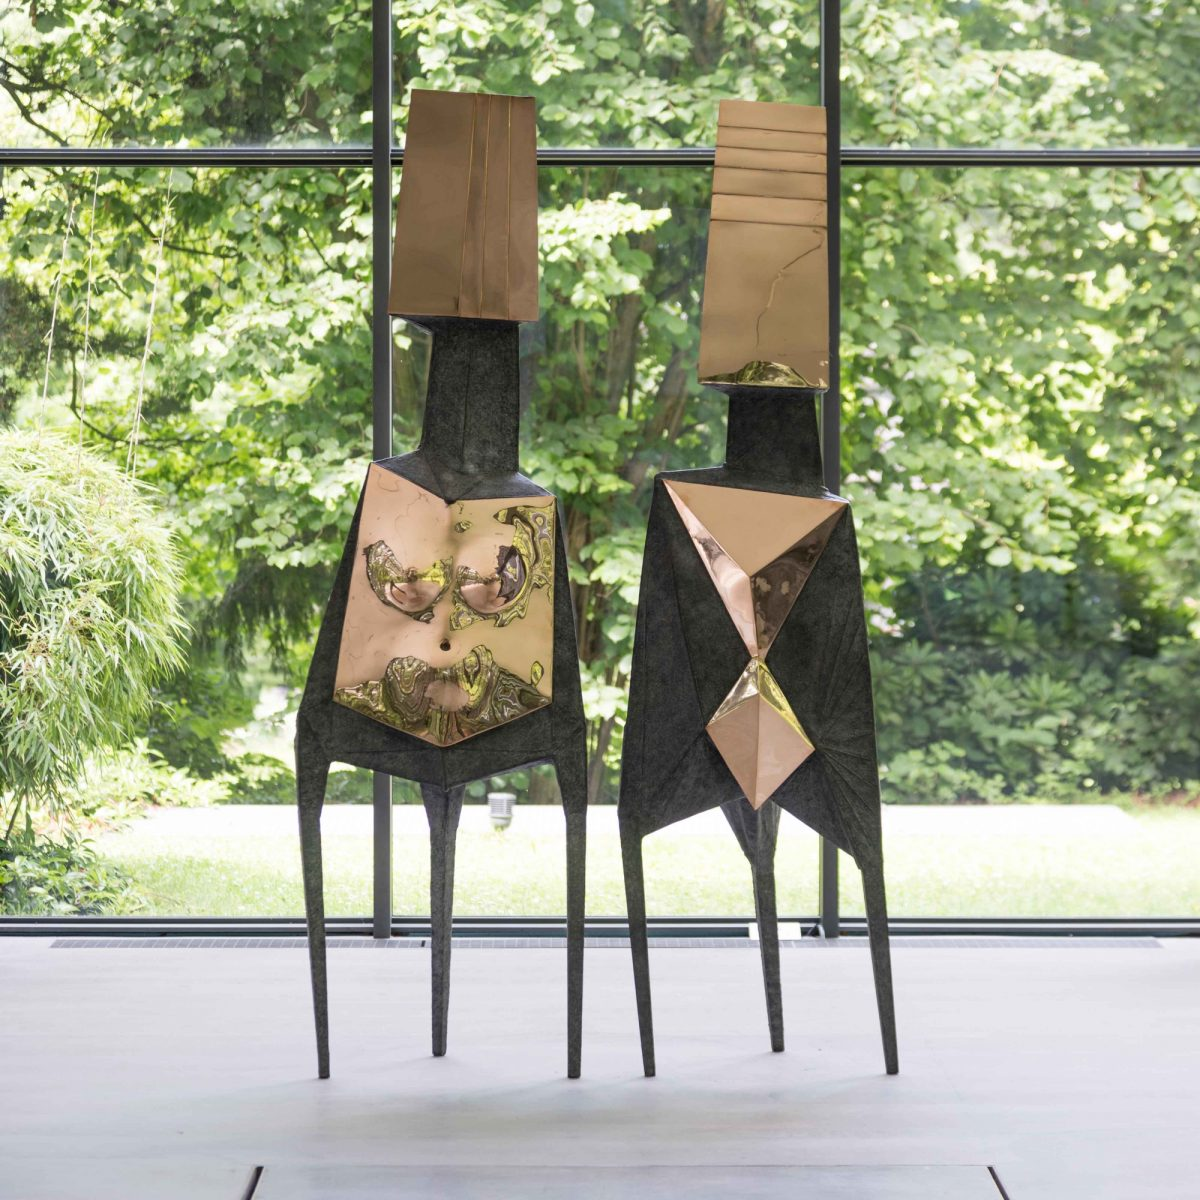 Lynn Chadwick Skulpturenpark Waldfrieden 2015 Installation View Of The Watchers Courtesy The Estate Of Lynn Chadwick And Blain Southern 9